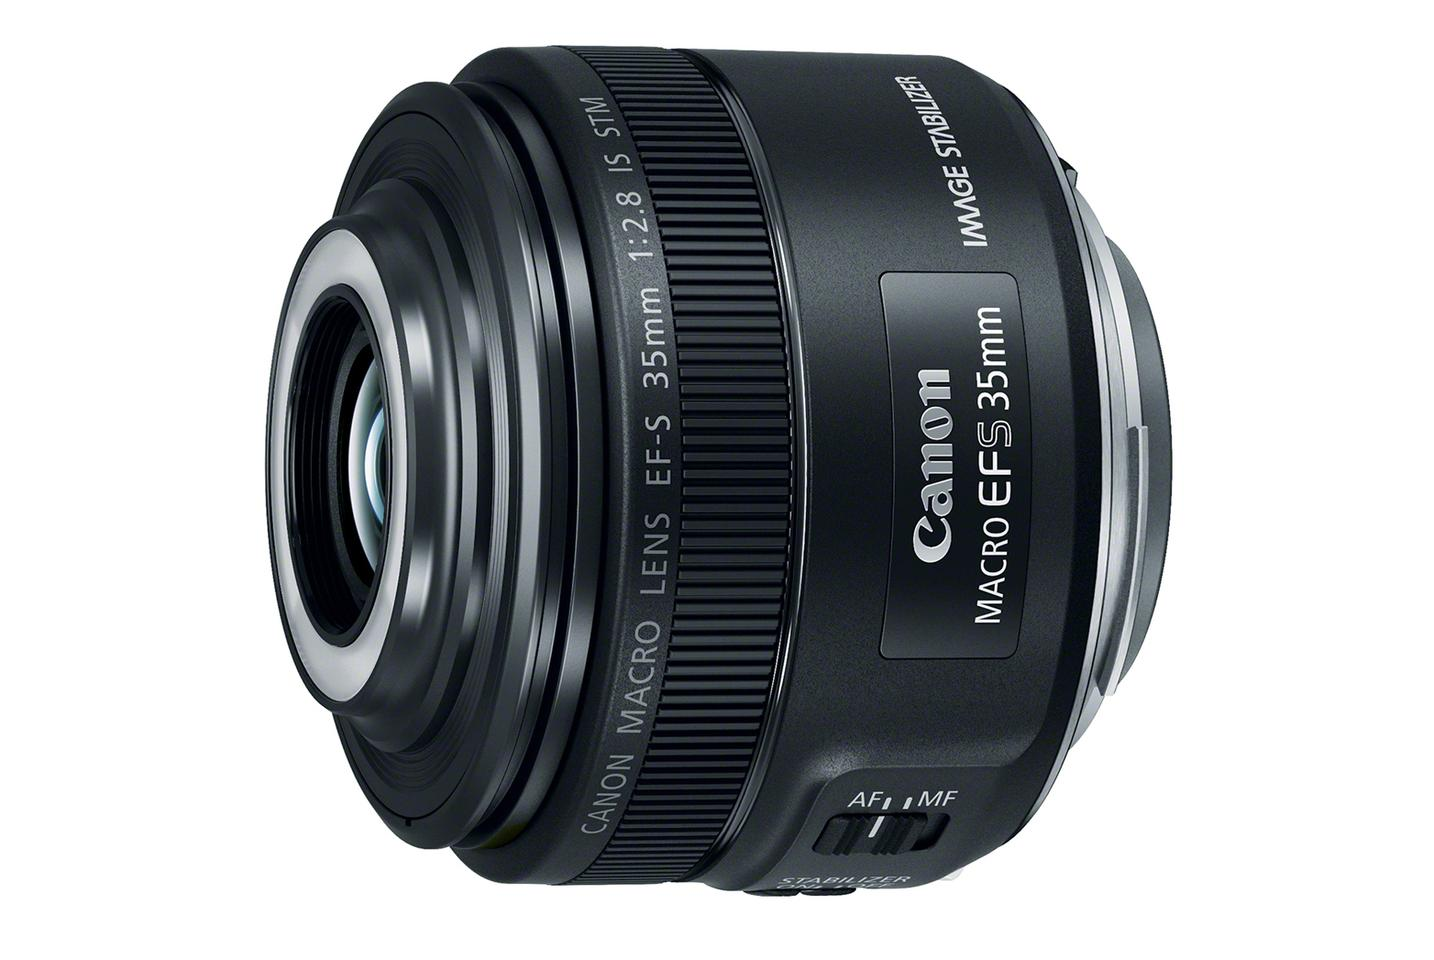 The Canon EF-S 35-mm F2.8 Macro IS STM is designed for use with Canon's APS-C DSLRs